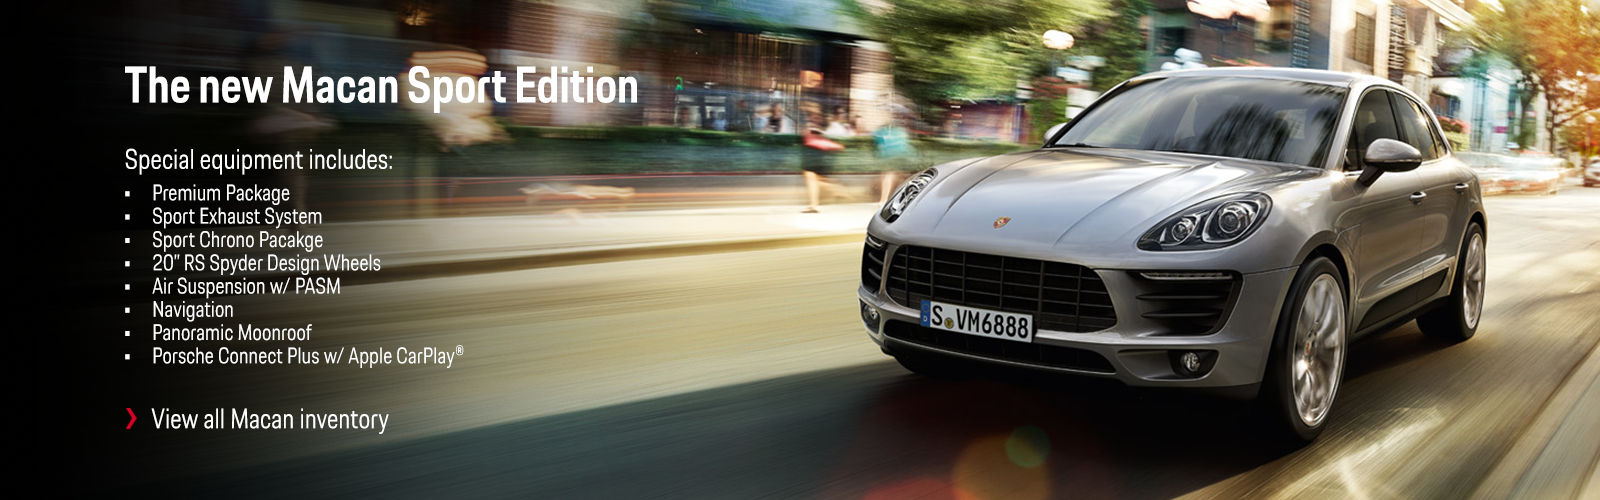 The New Macan Sport Edition